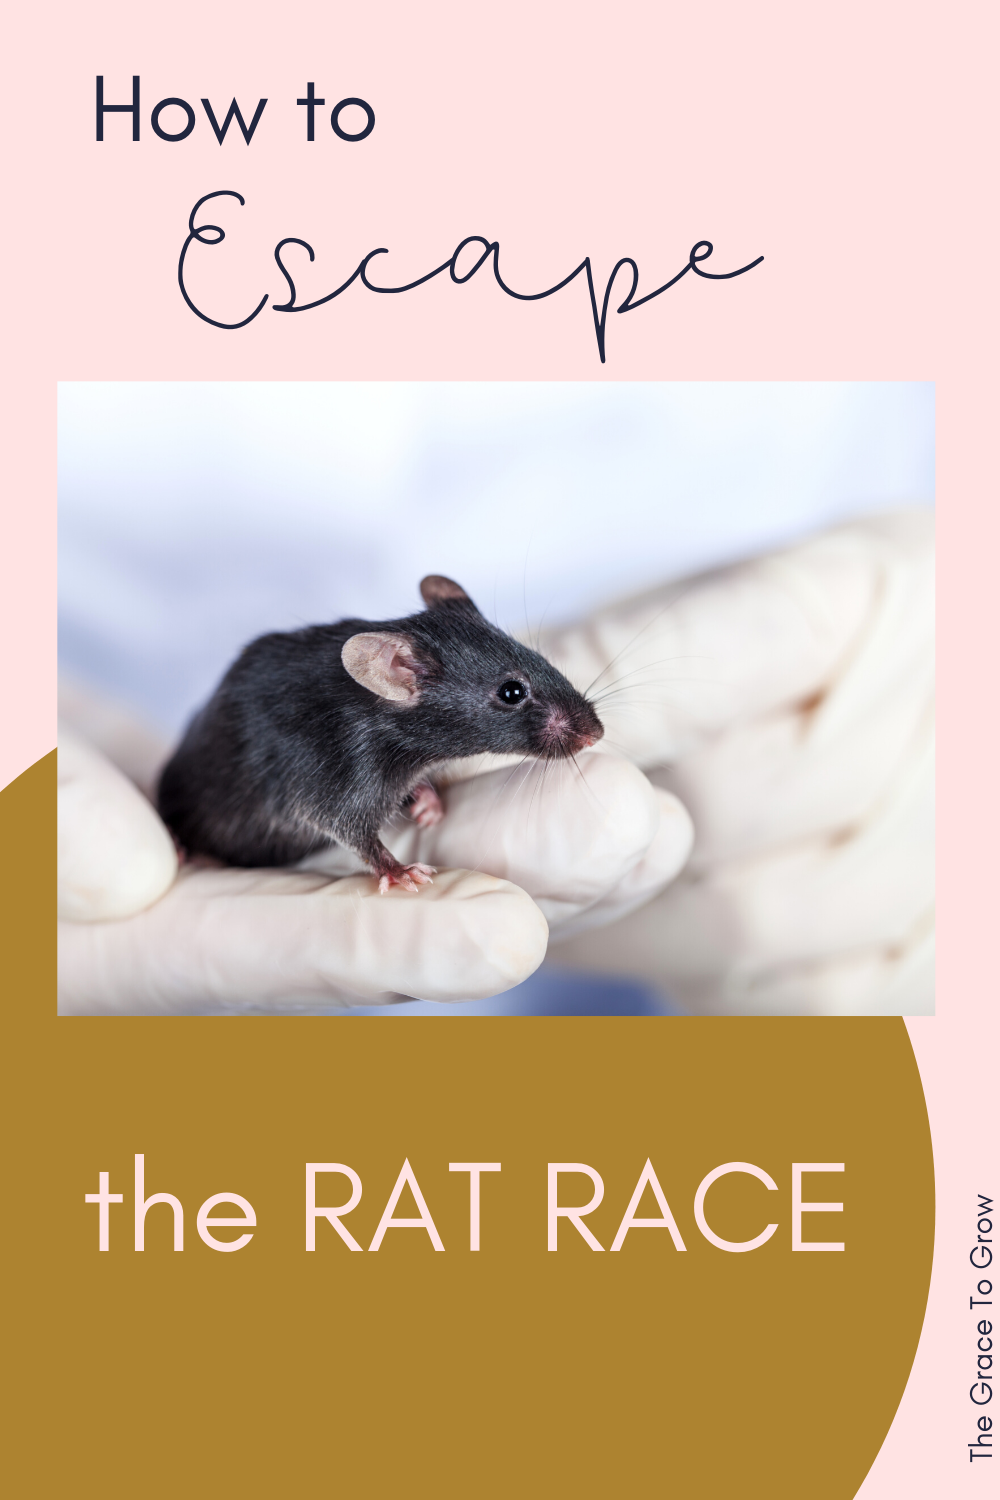 how-to-escape-the-rat-race-pinterest-image